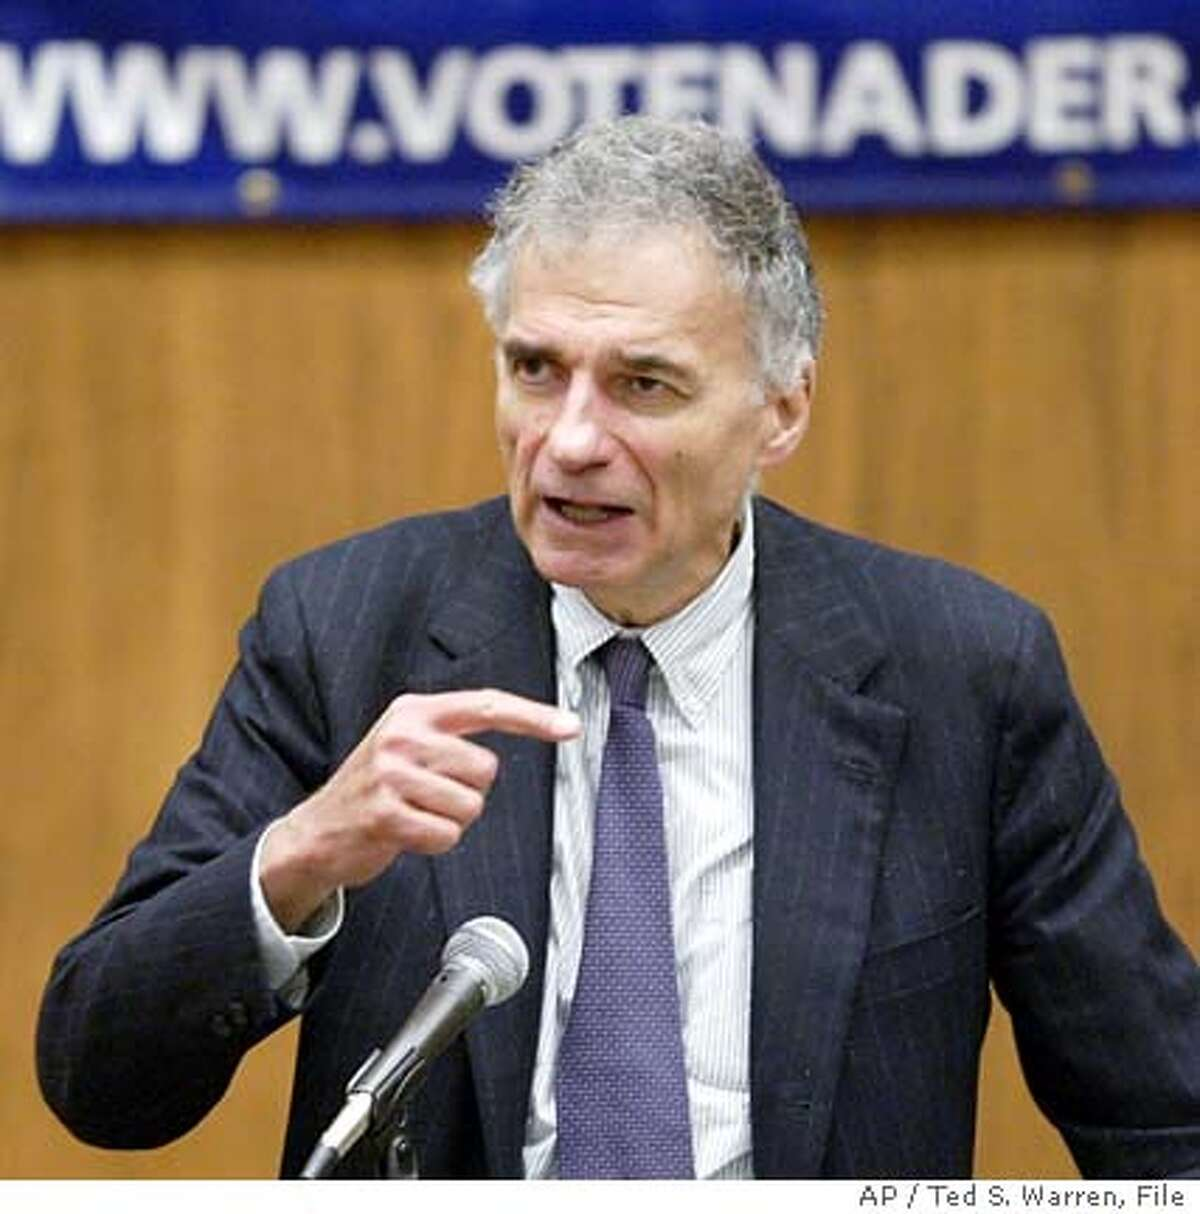 Independent presidential candidate Ralph Nader speaks Sunday, June 27, 2004 at a nominating convention on the University of Washington Campus in Seattle. Nader said he's confident he'll gather the 1,000 signatures he needs to get on the Washington state ballot in November. (AP Photo/Ted S. Warren)